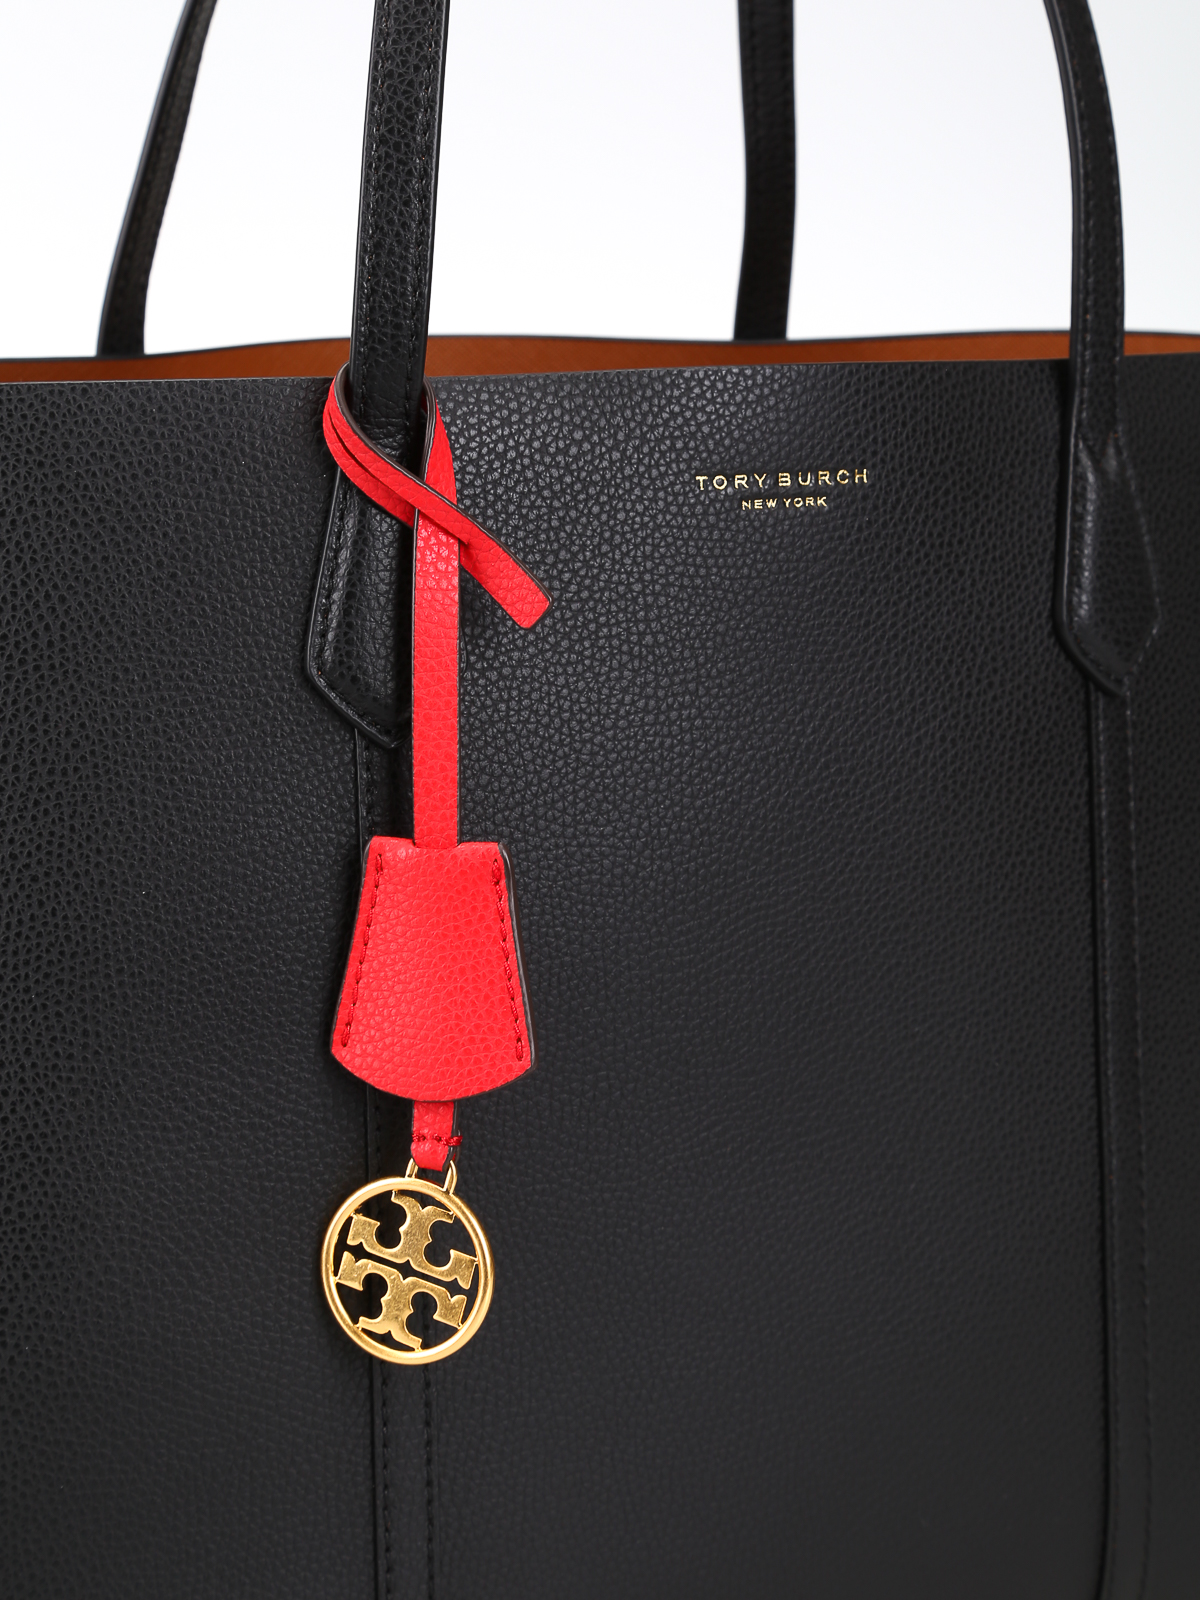 616541de5 Tory Burch - Perry Triple Compartment black leather bag - totes bags ...